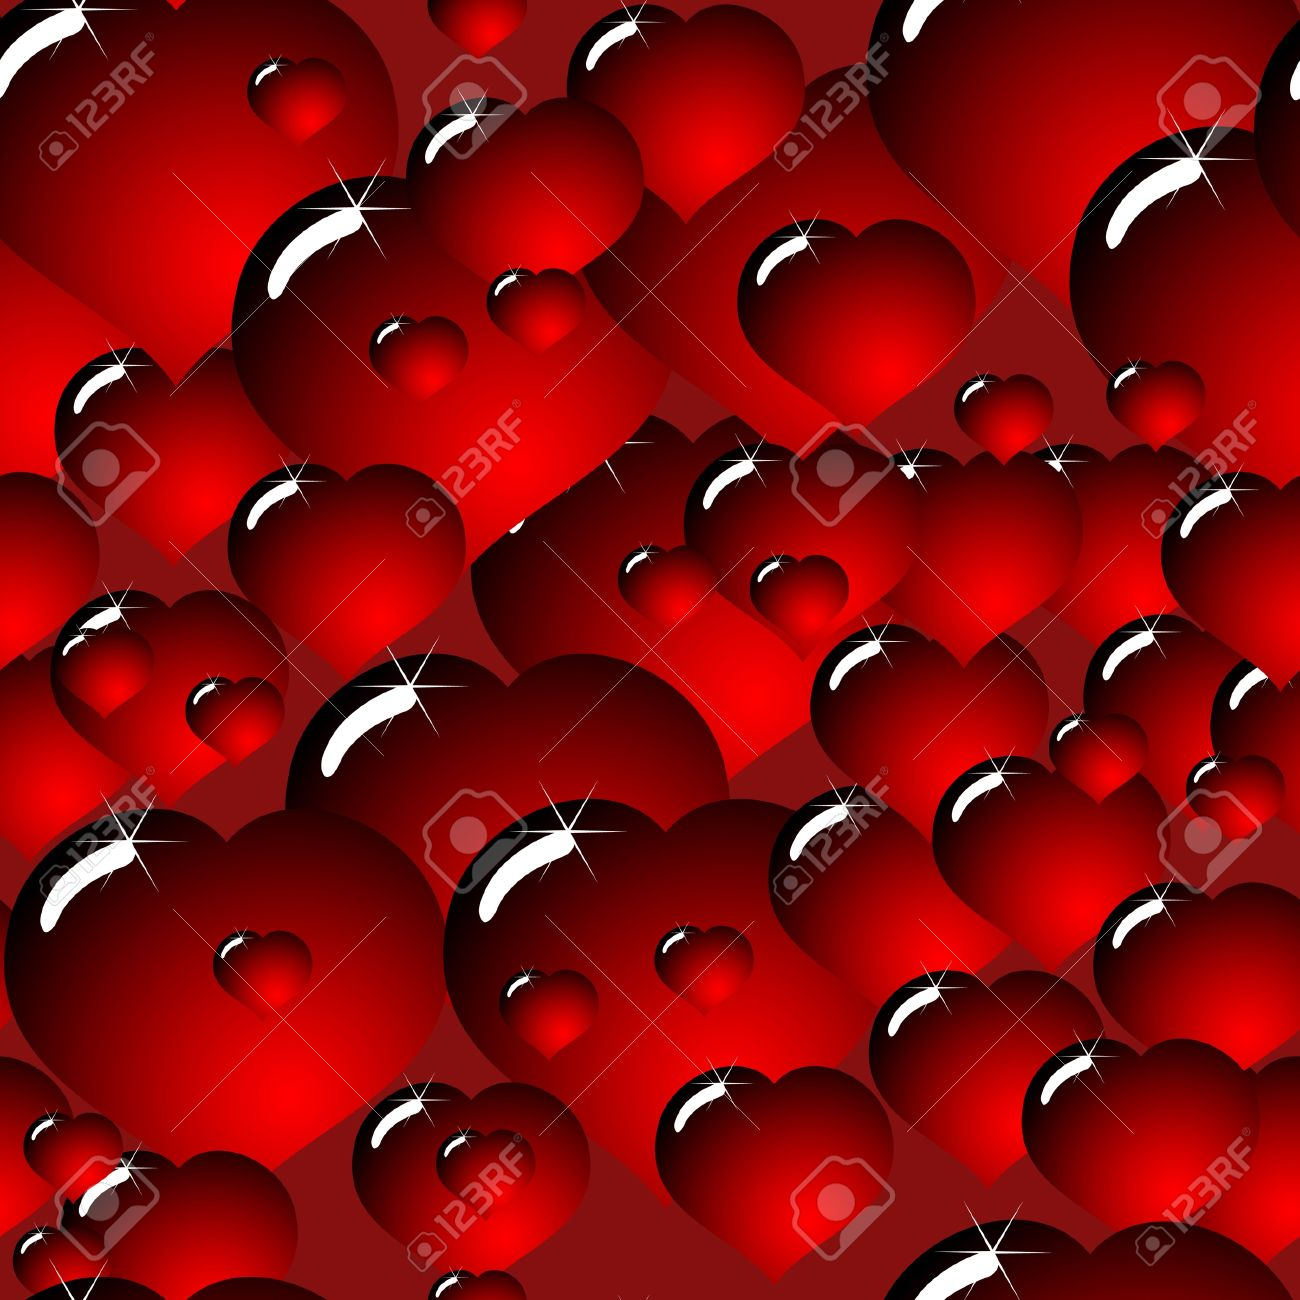 Valentine's day abstract background with glass dark-red hearts. Seamless pattern. Vector illustration. Stock Vector - 8485915